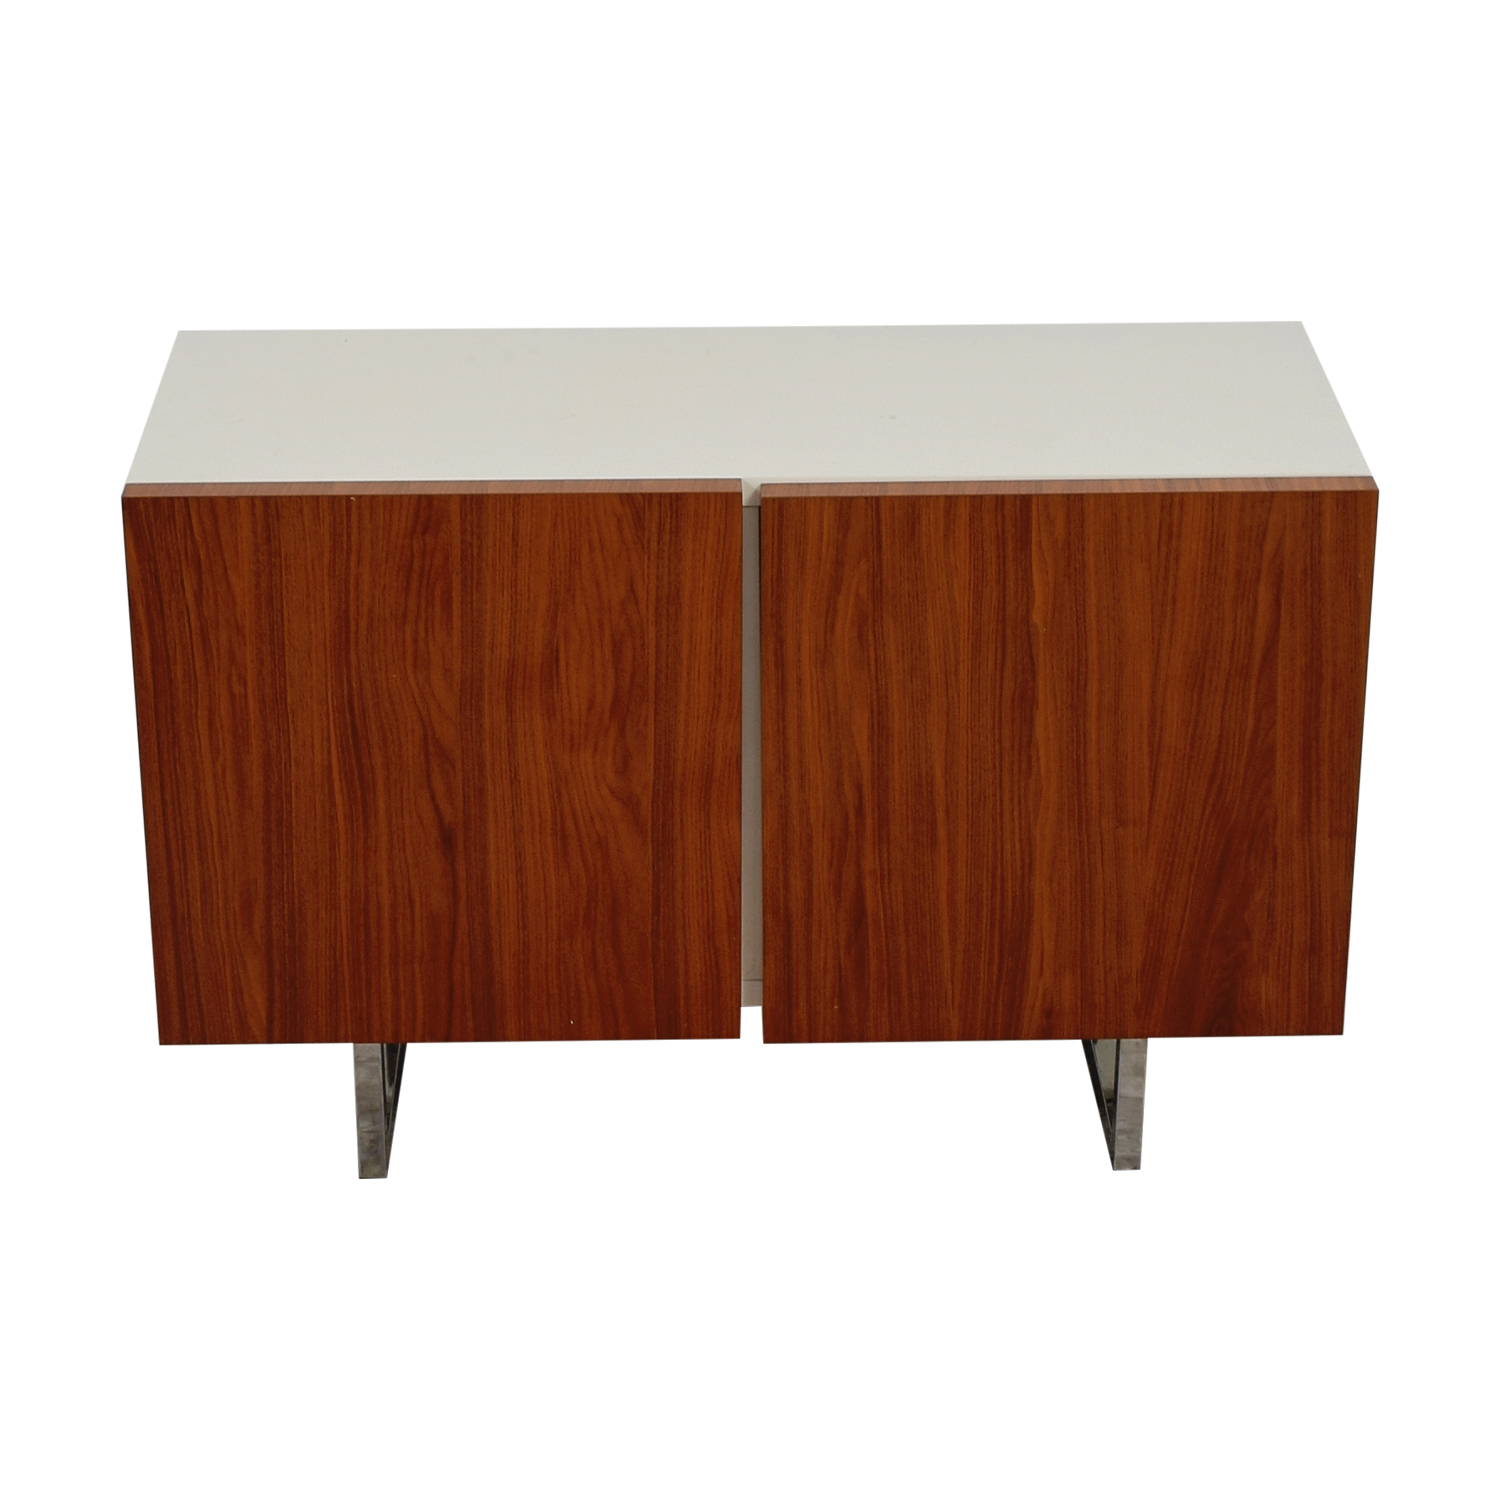 Calligaris Calligaris White and Wood Buffet nj